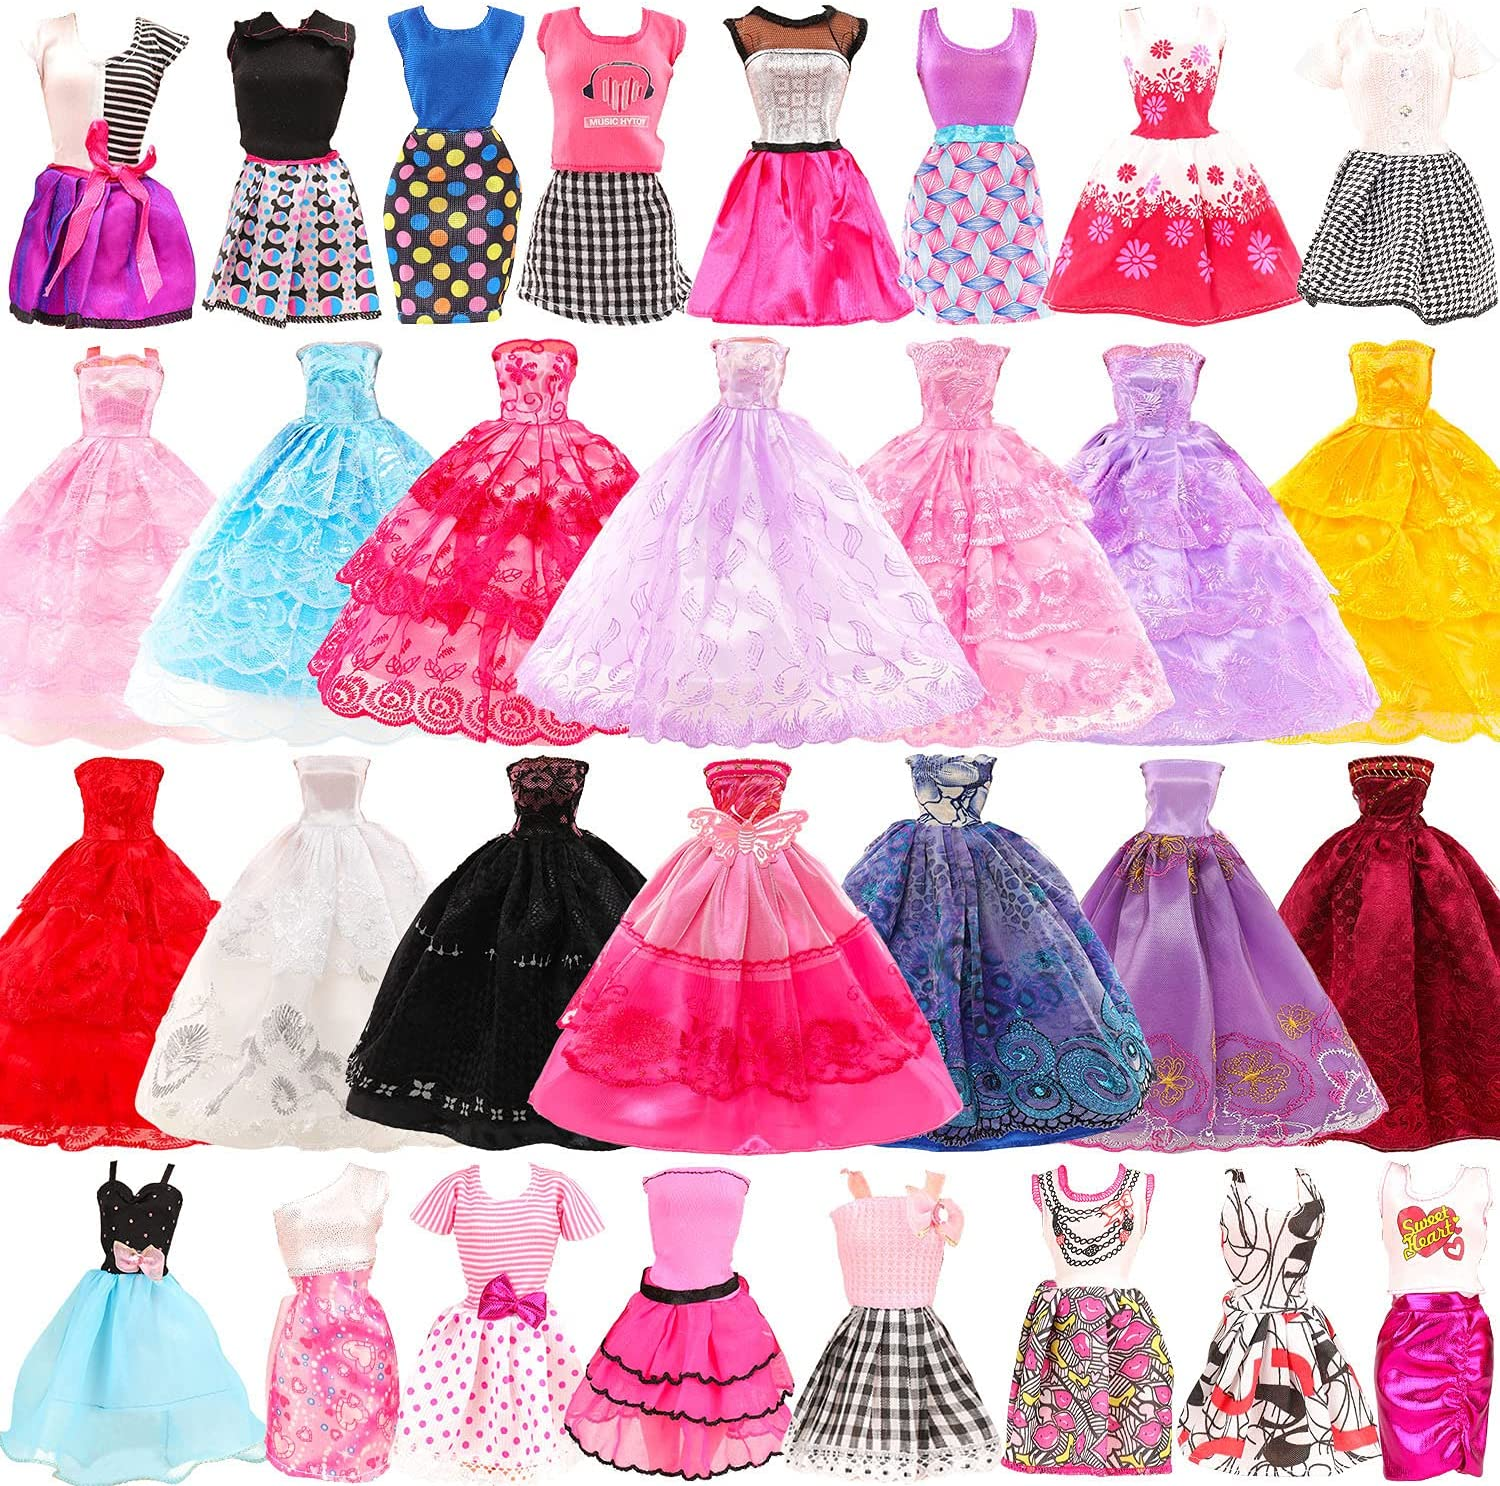 Same day shipping Funlight 10 Set Doll outlet Clothes 5 Clothe Wedding Party Gown Dresses